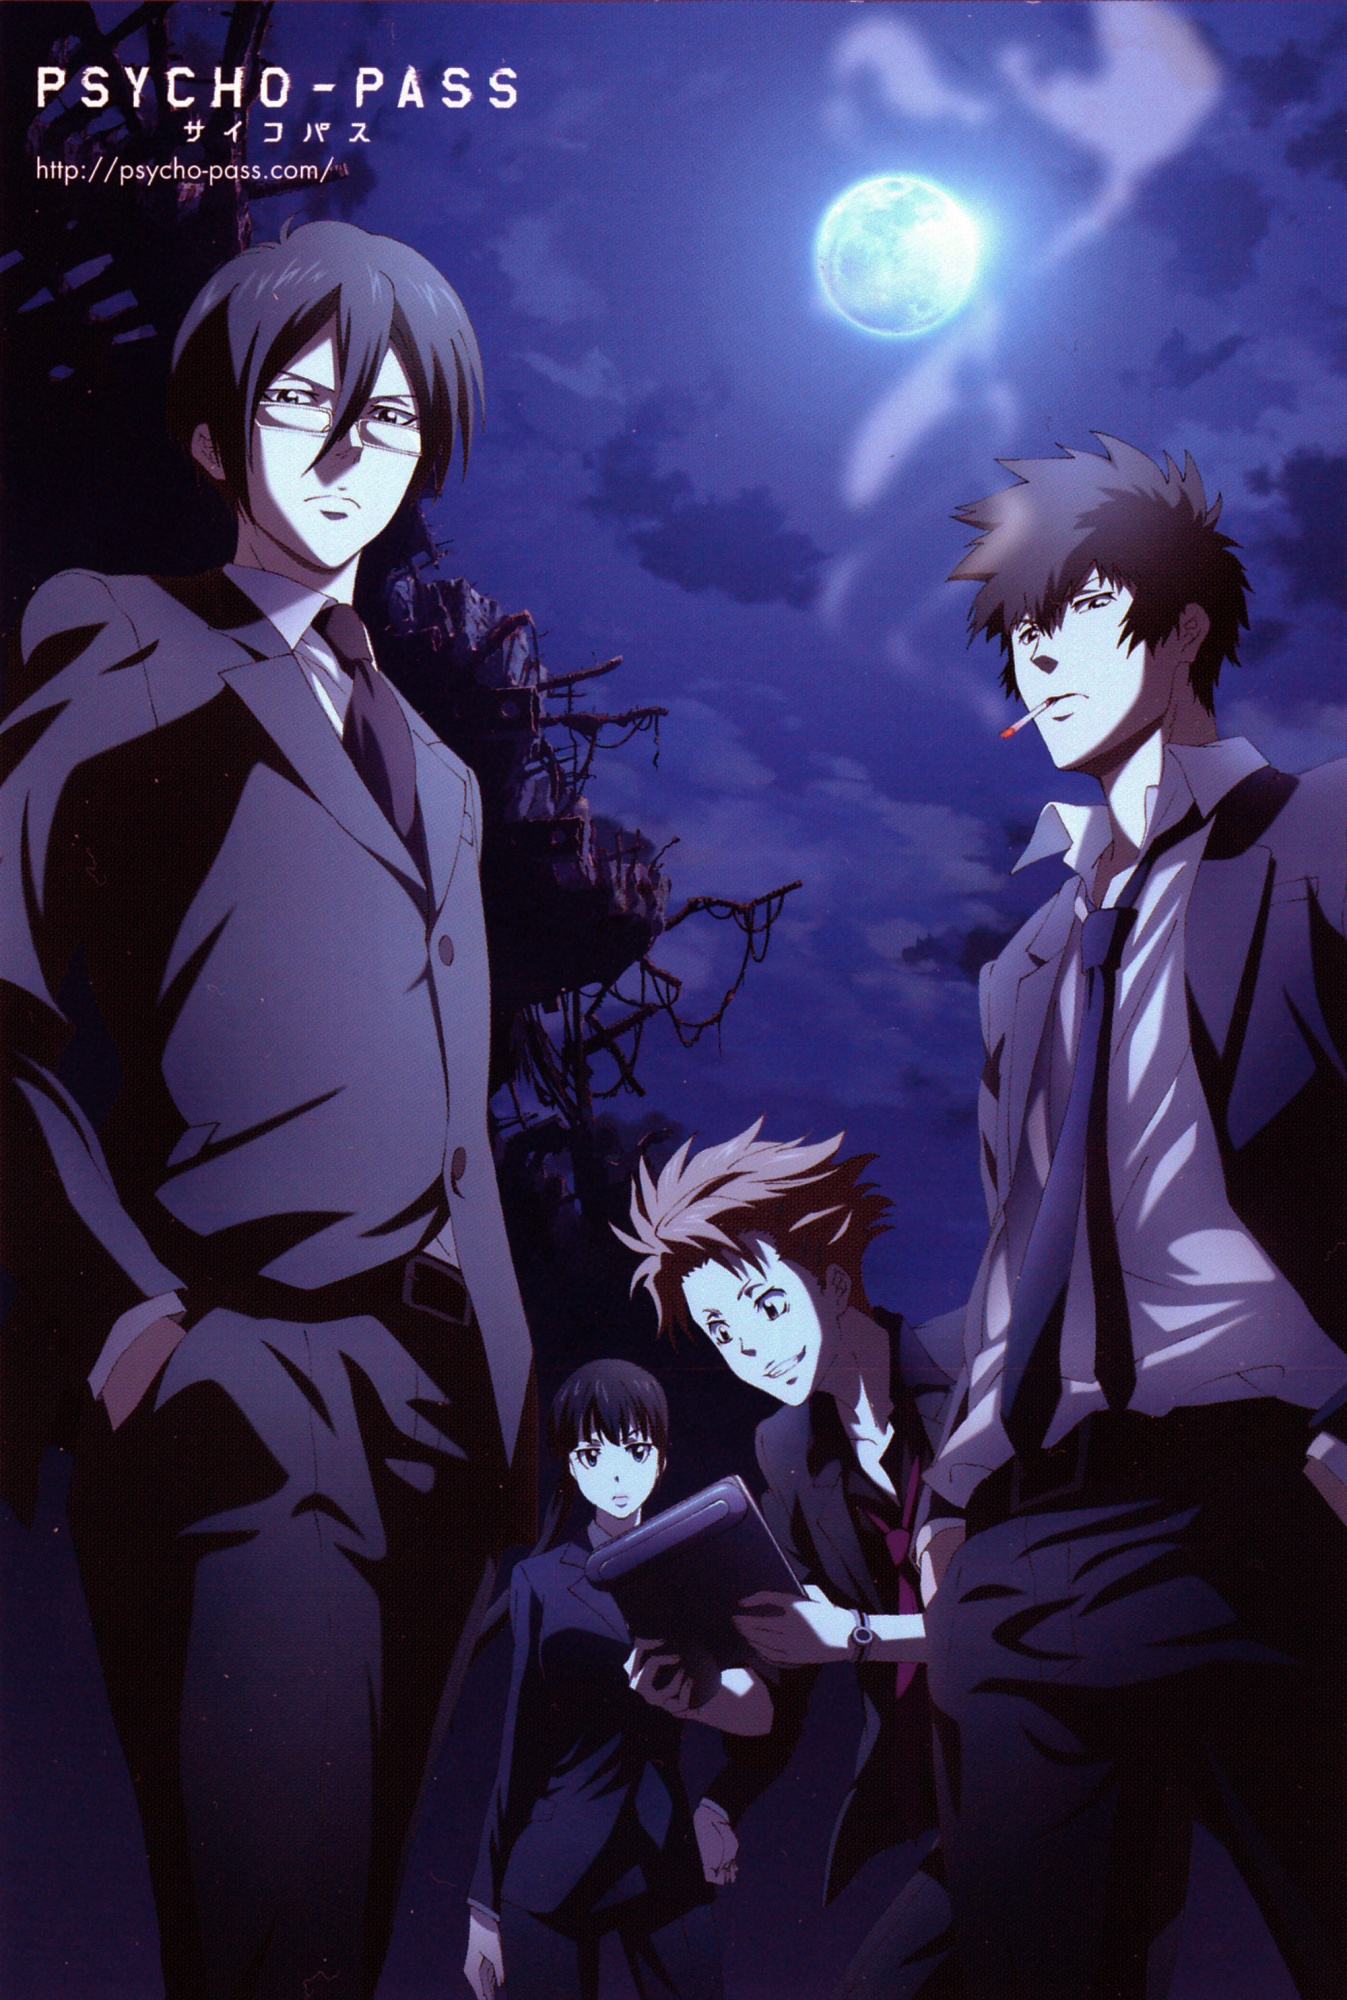 Iphone 5 Wallpaper Shelf Cute Psycho Pass My Anime Shelf